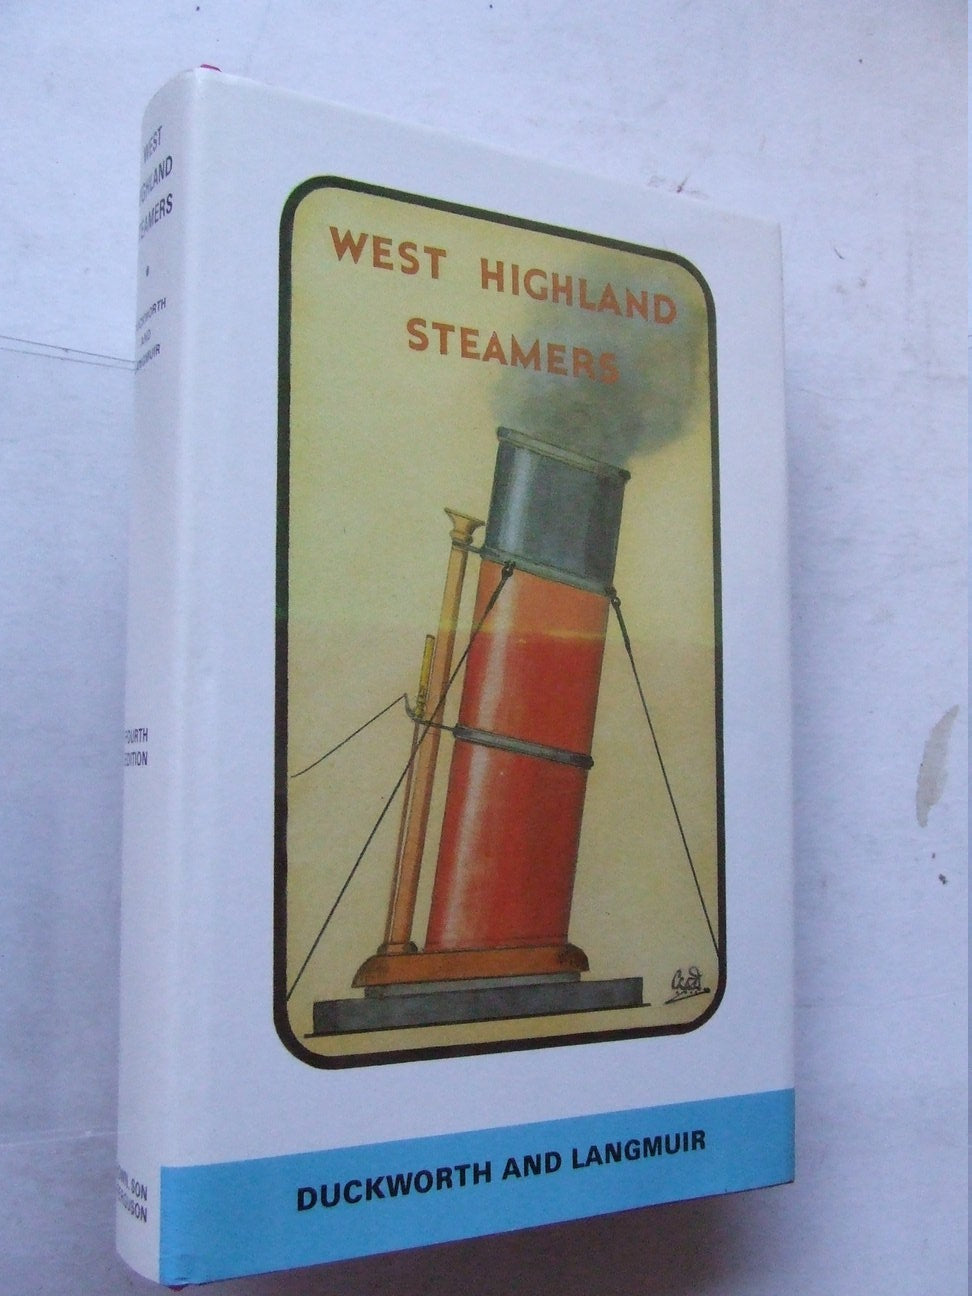 West Highland Steamers -  4th edition